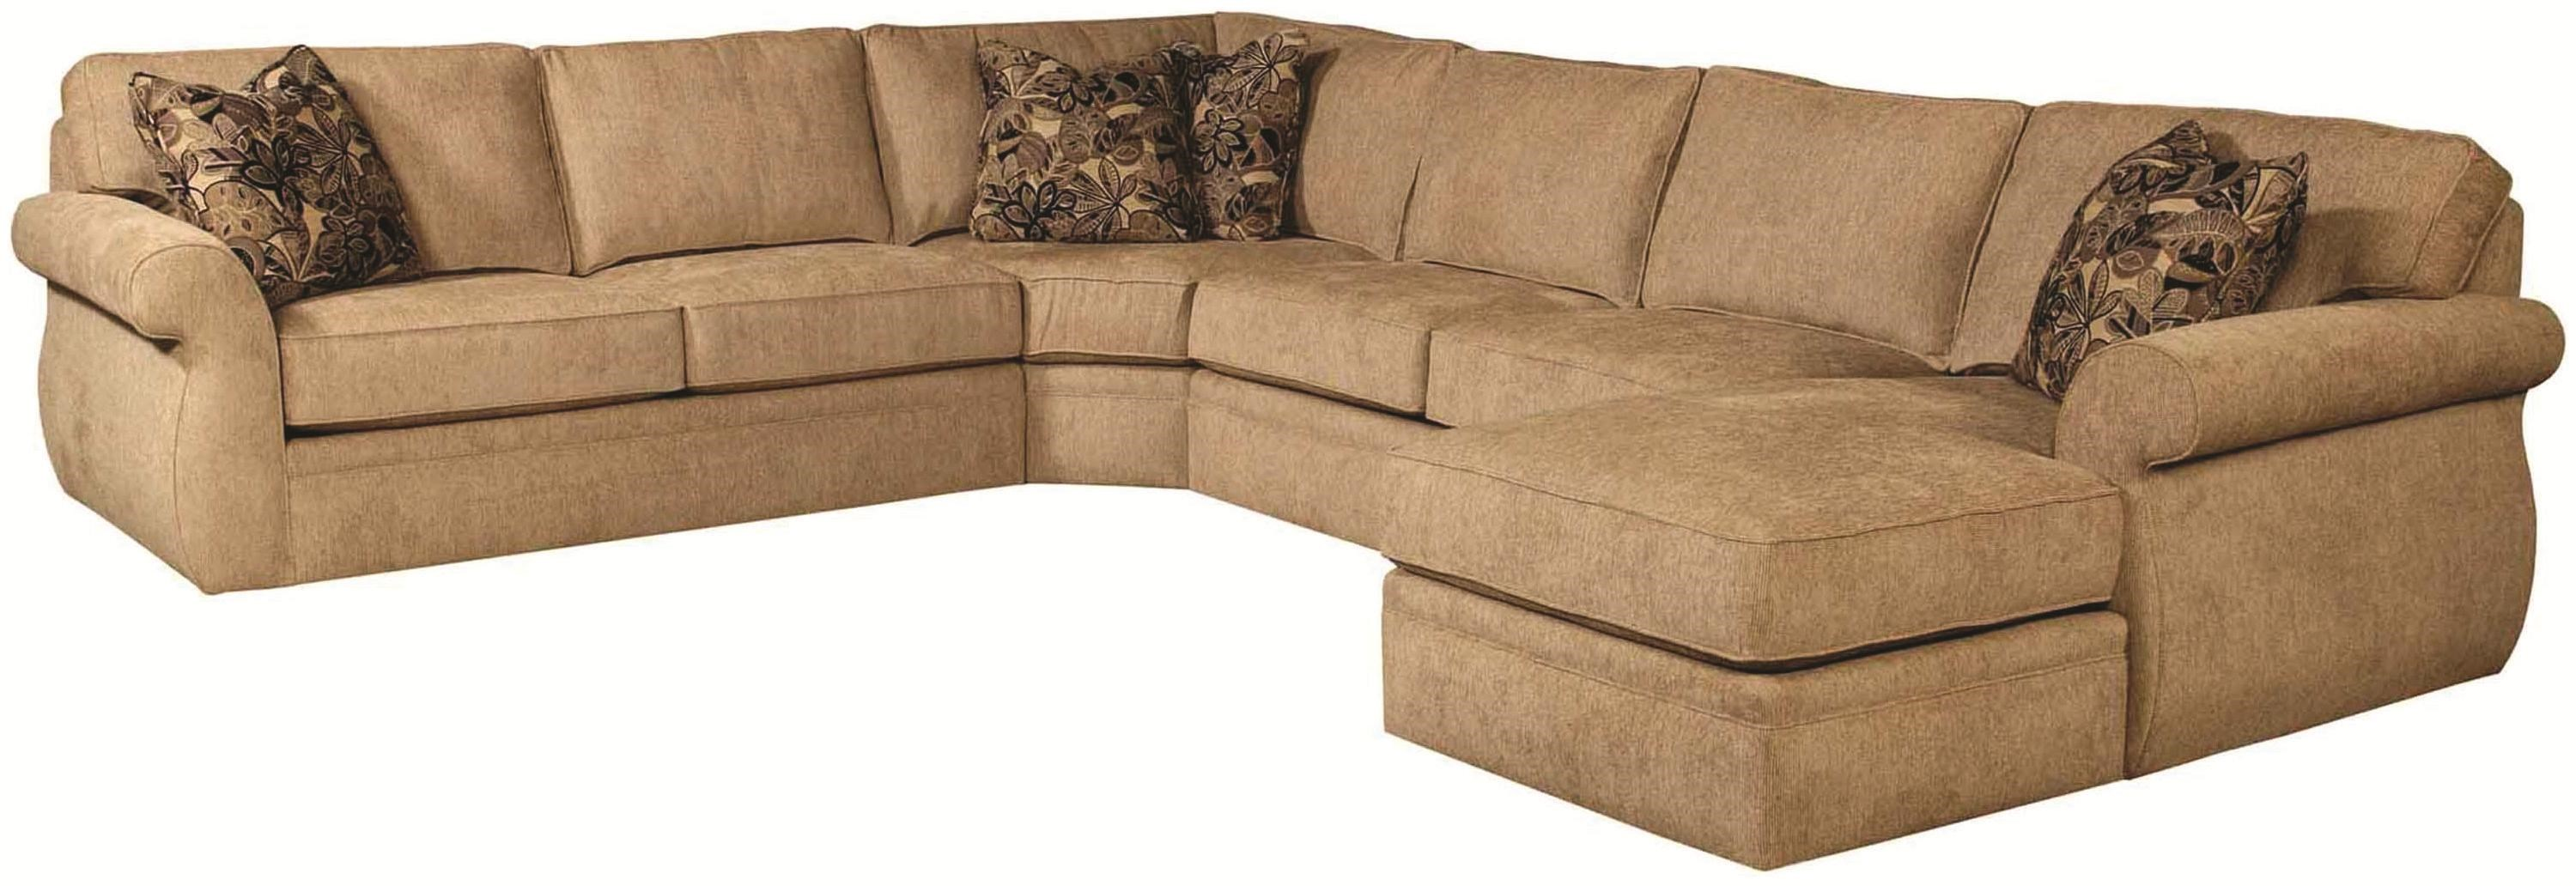 Broyhill Express Veronica Quick Ship Sectional Sofa Group